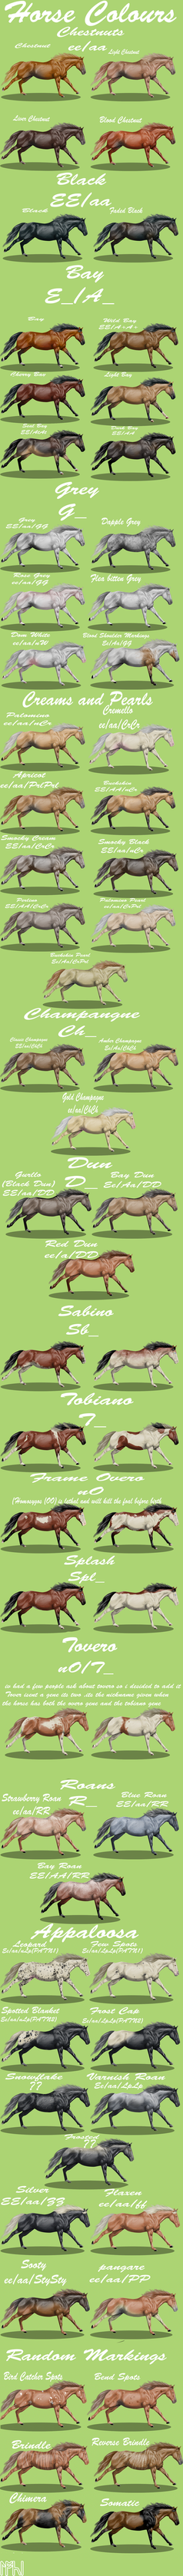 Horse colours complete by EdithSparrow